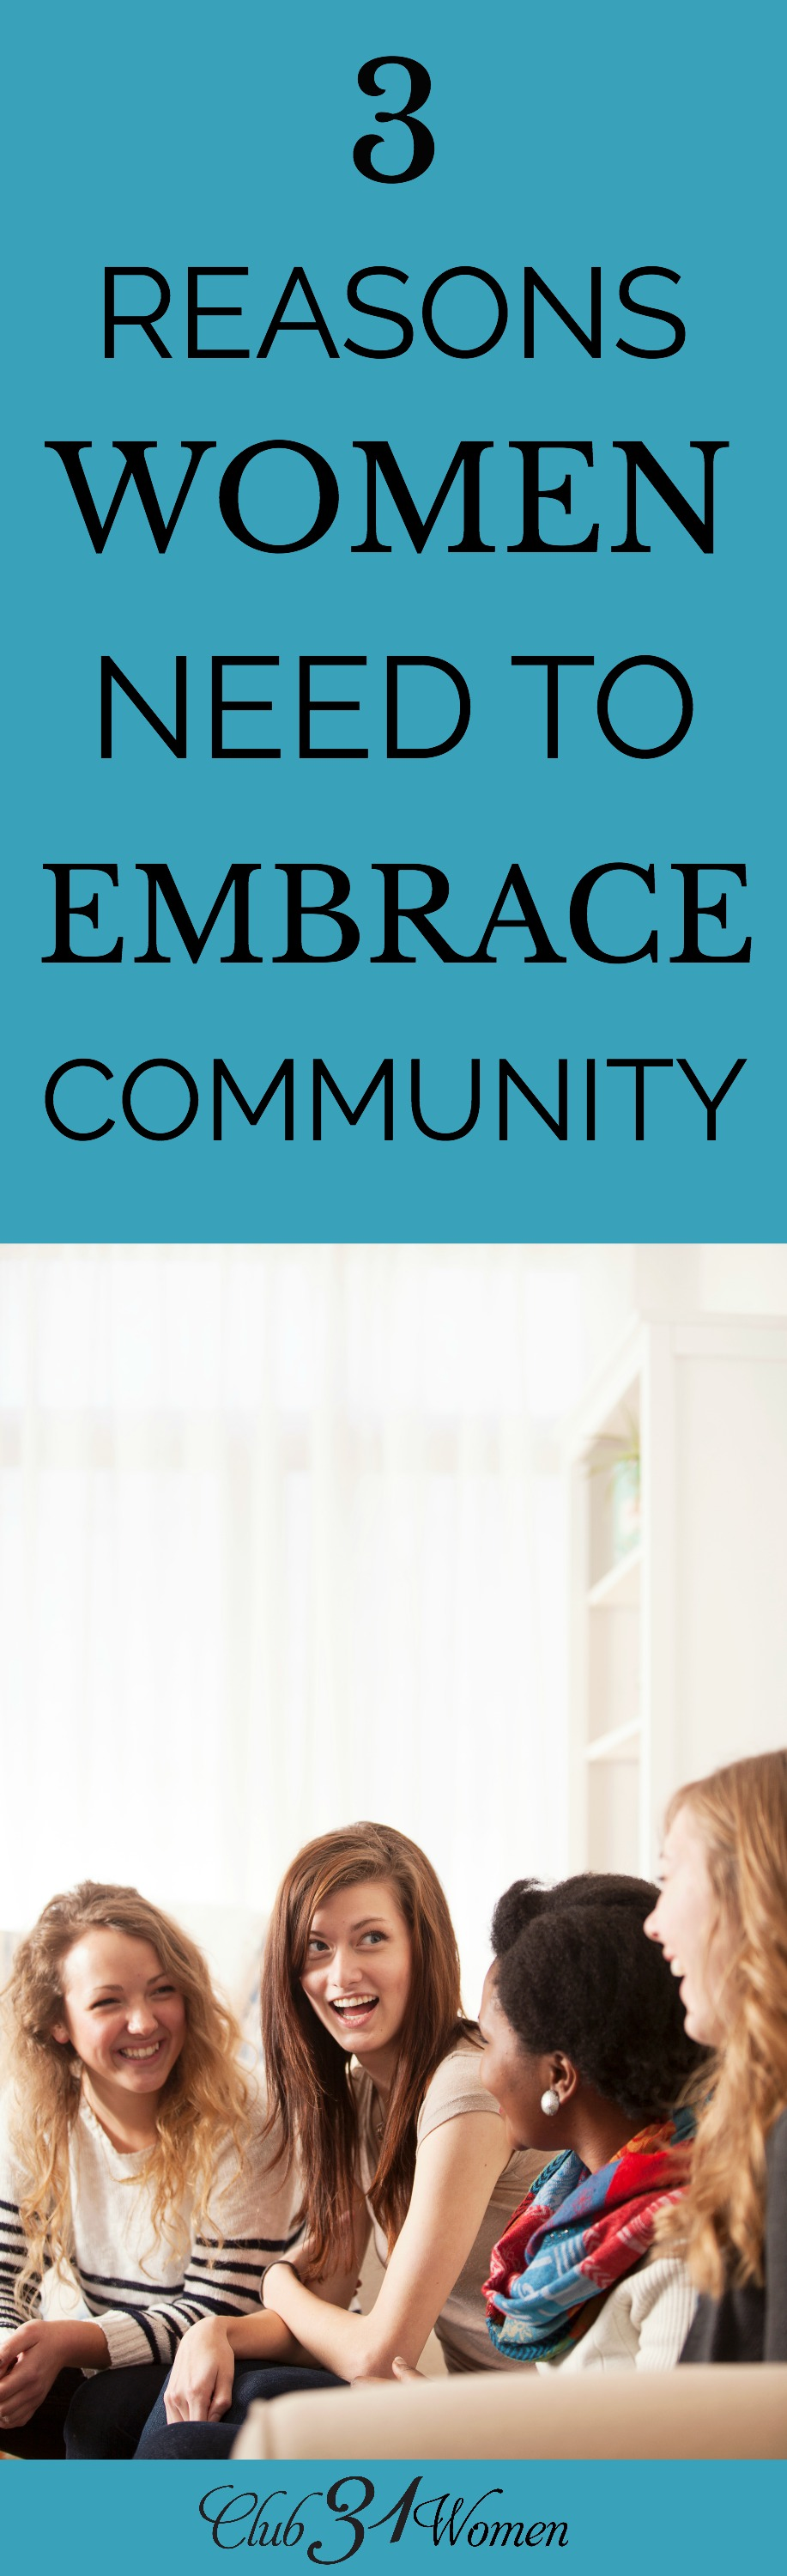 Women need community but what do you do when you've been hurt by community in the past? Is there a way to heal and embrace community again? via @Club31Women